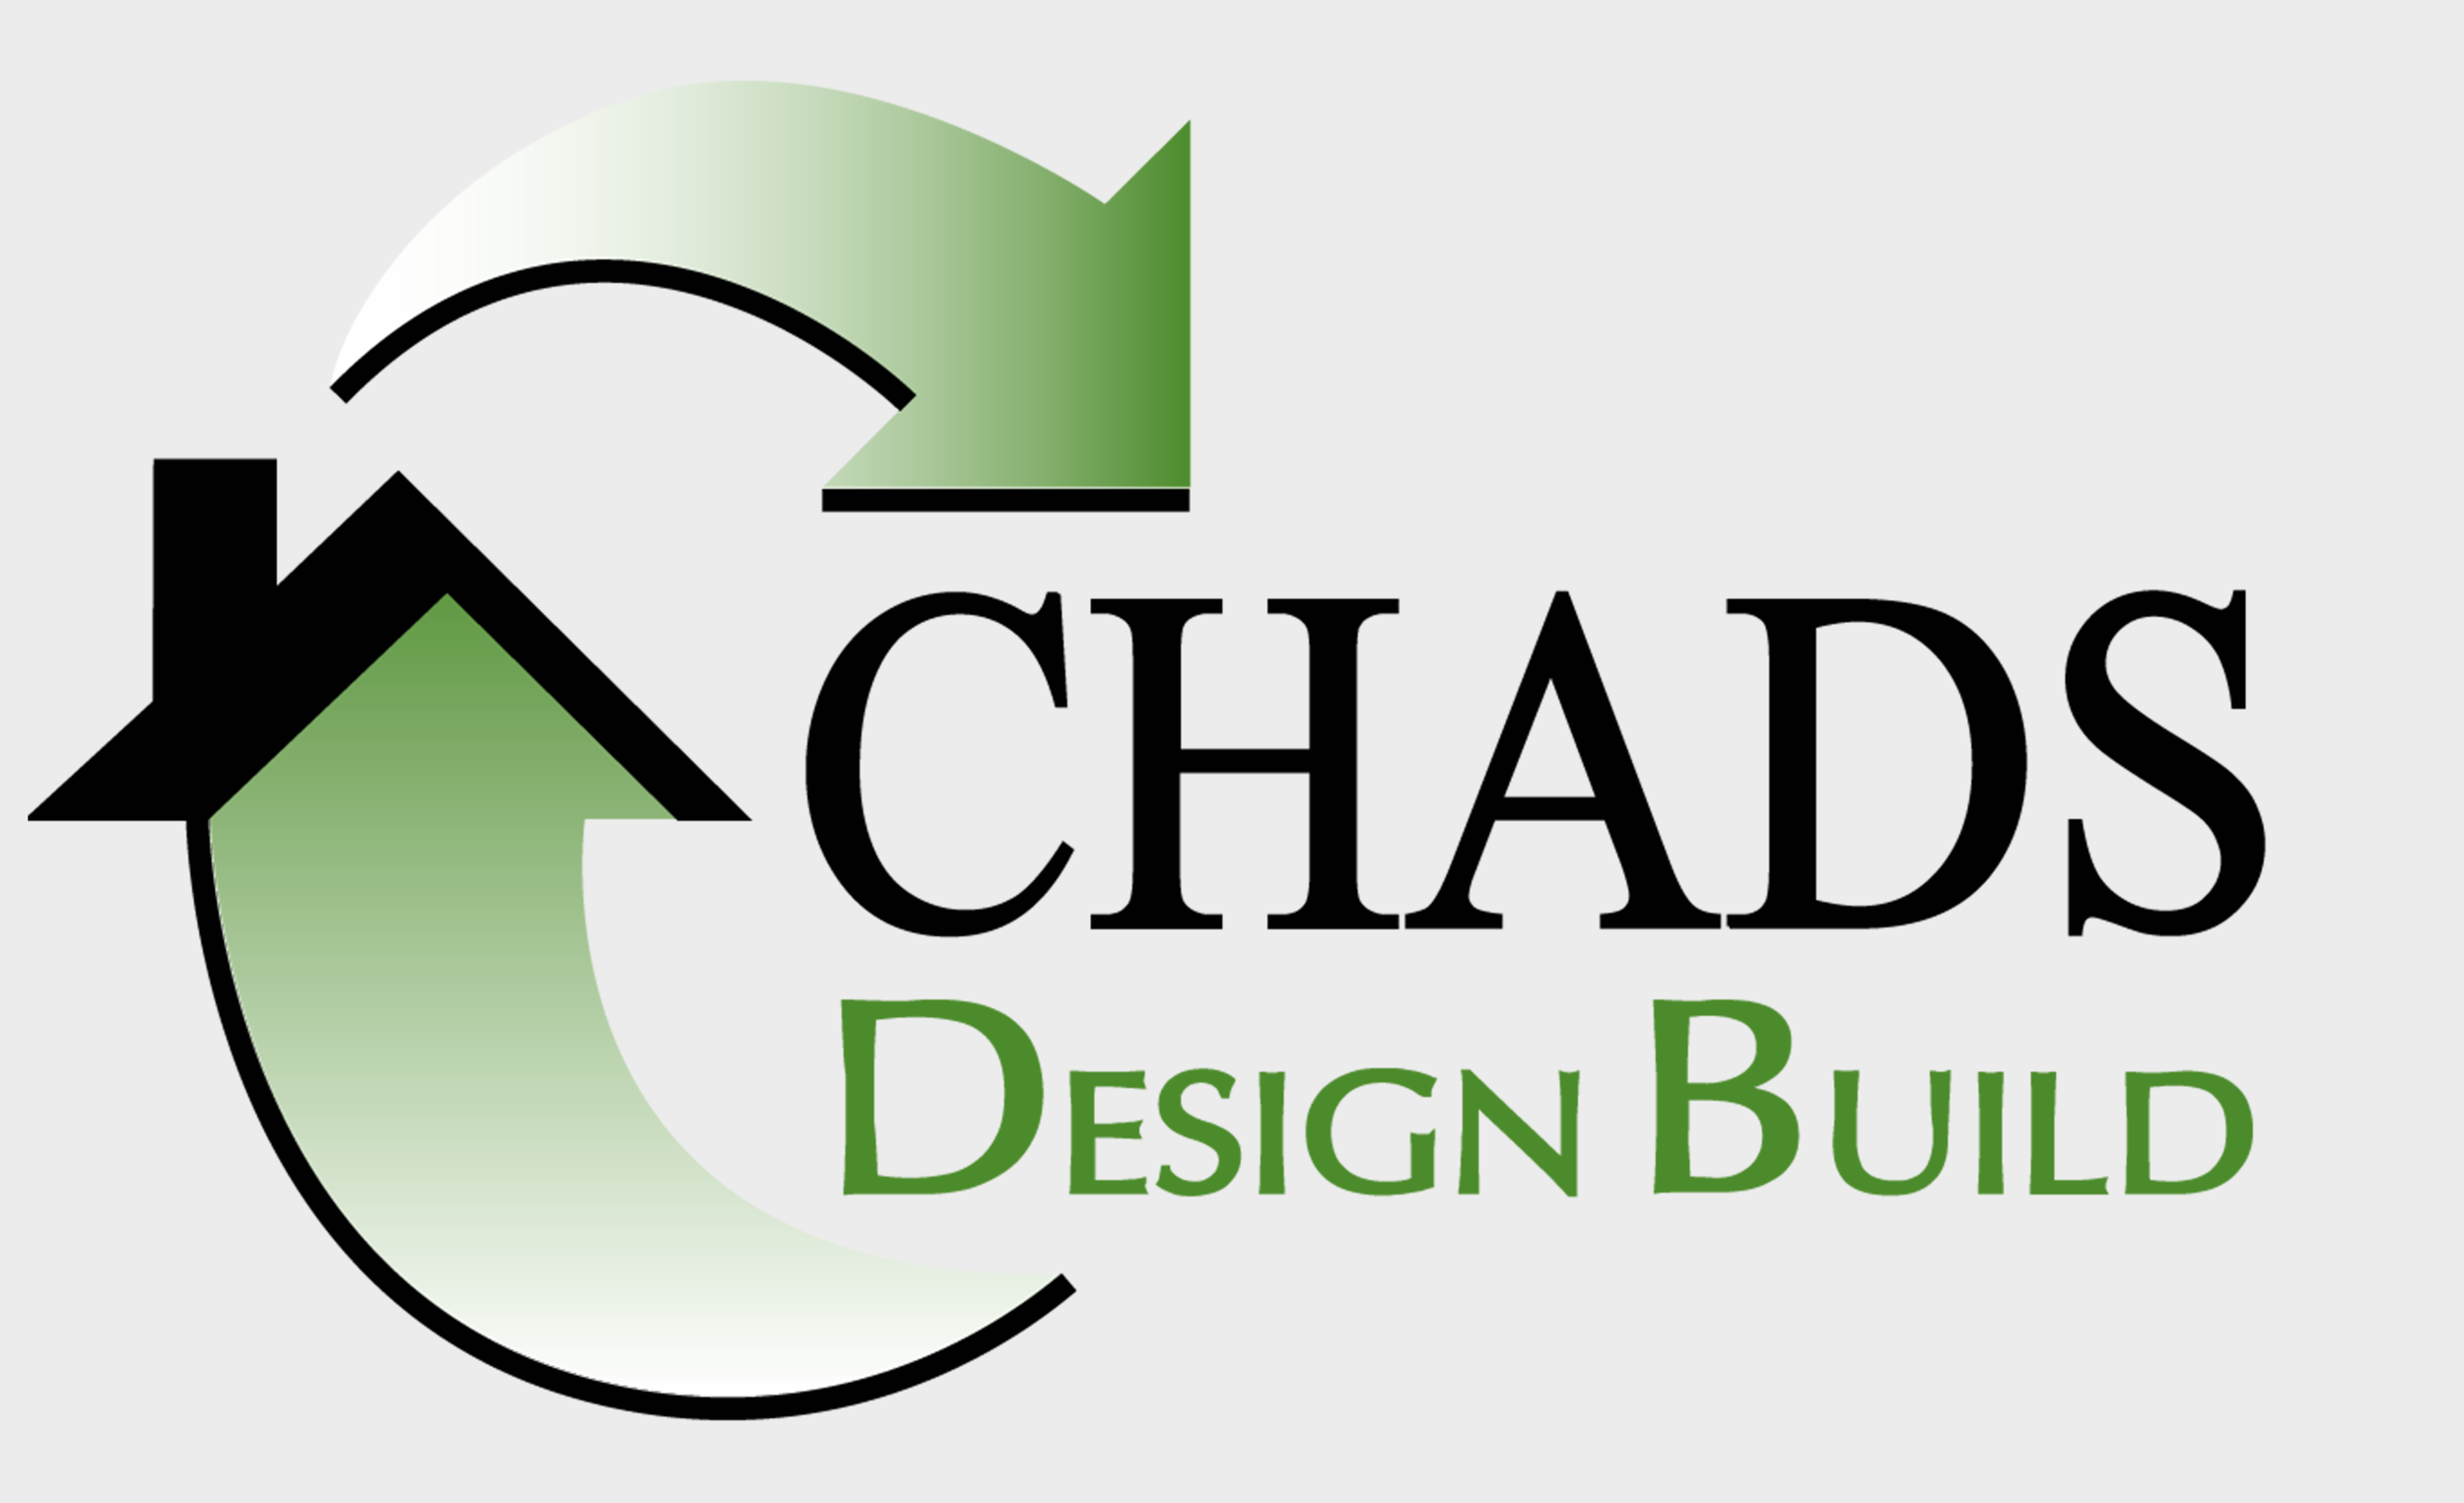 Chad's Design Build - Architectural photography for Madison, WI architect, design build, and construction